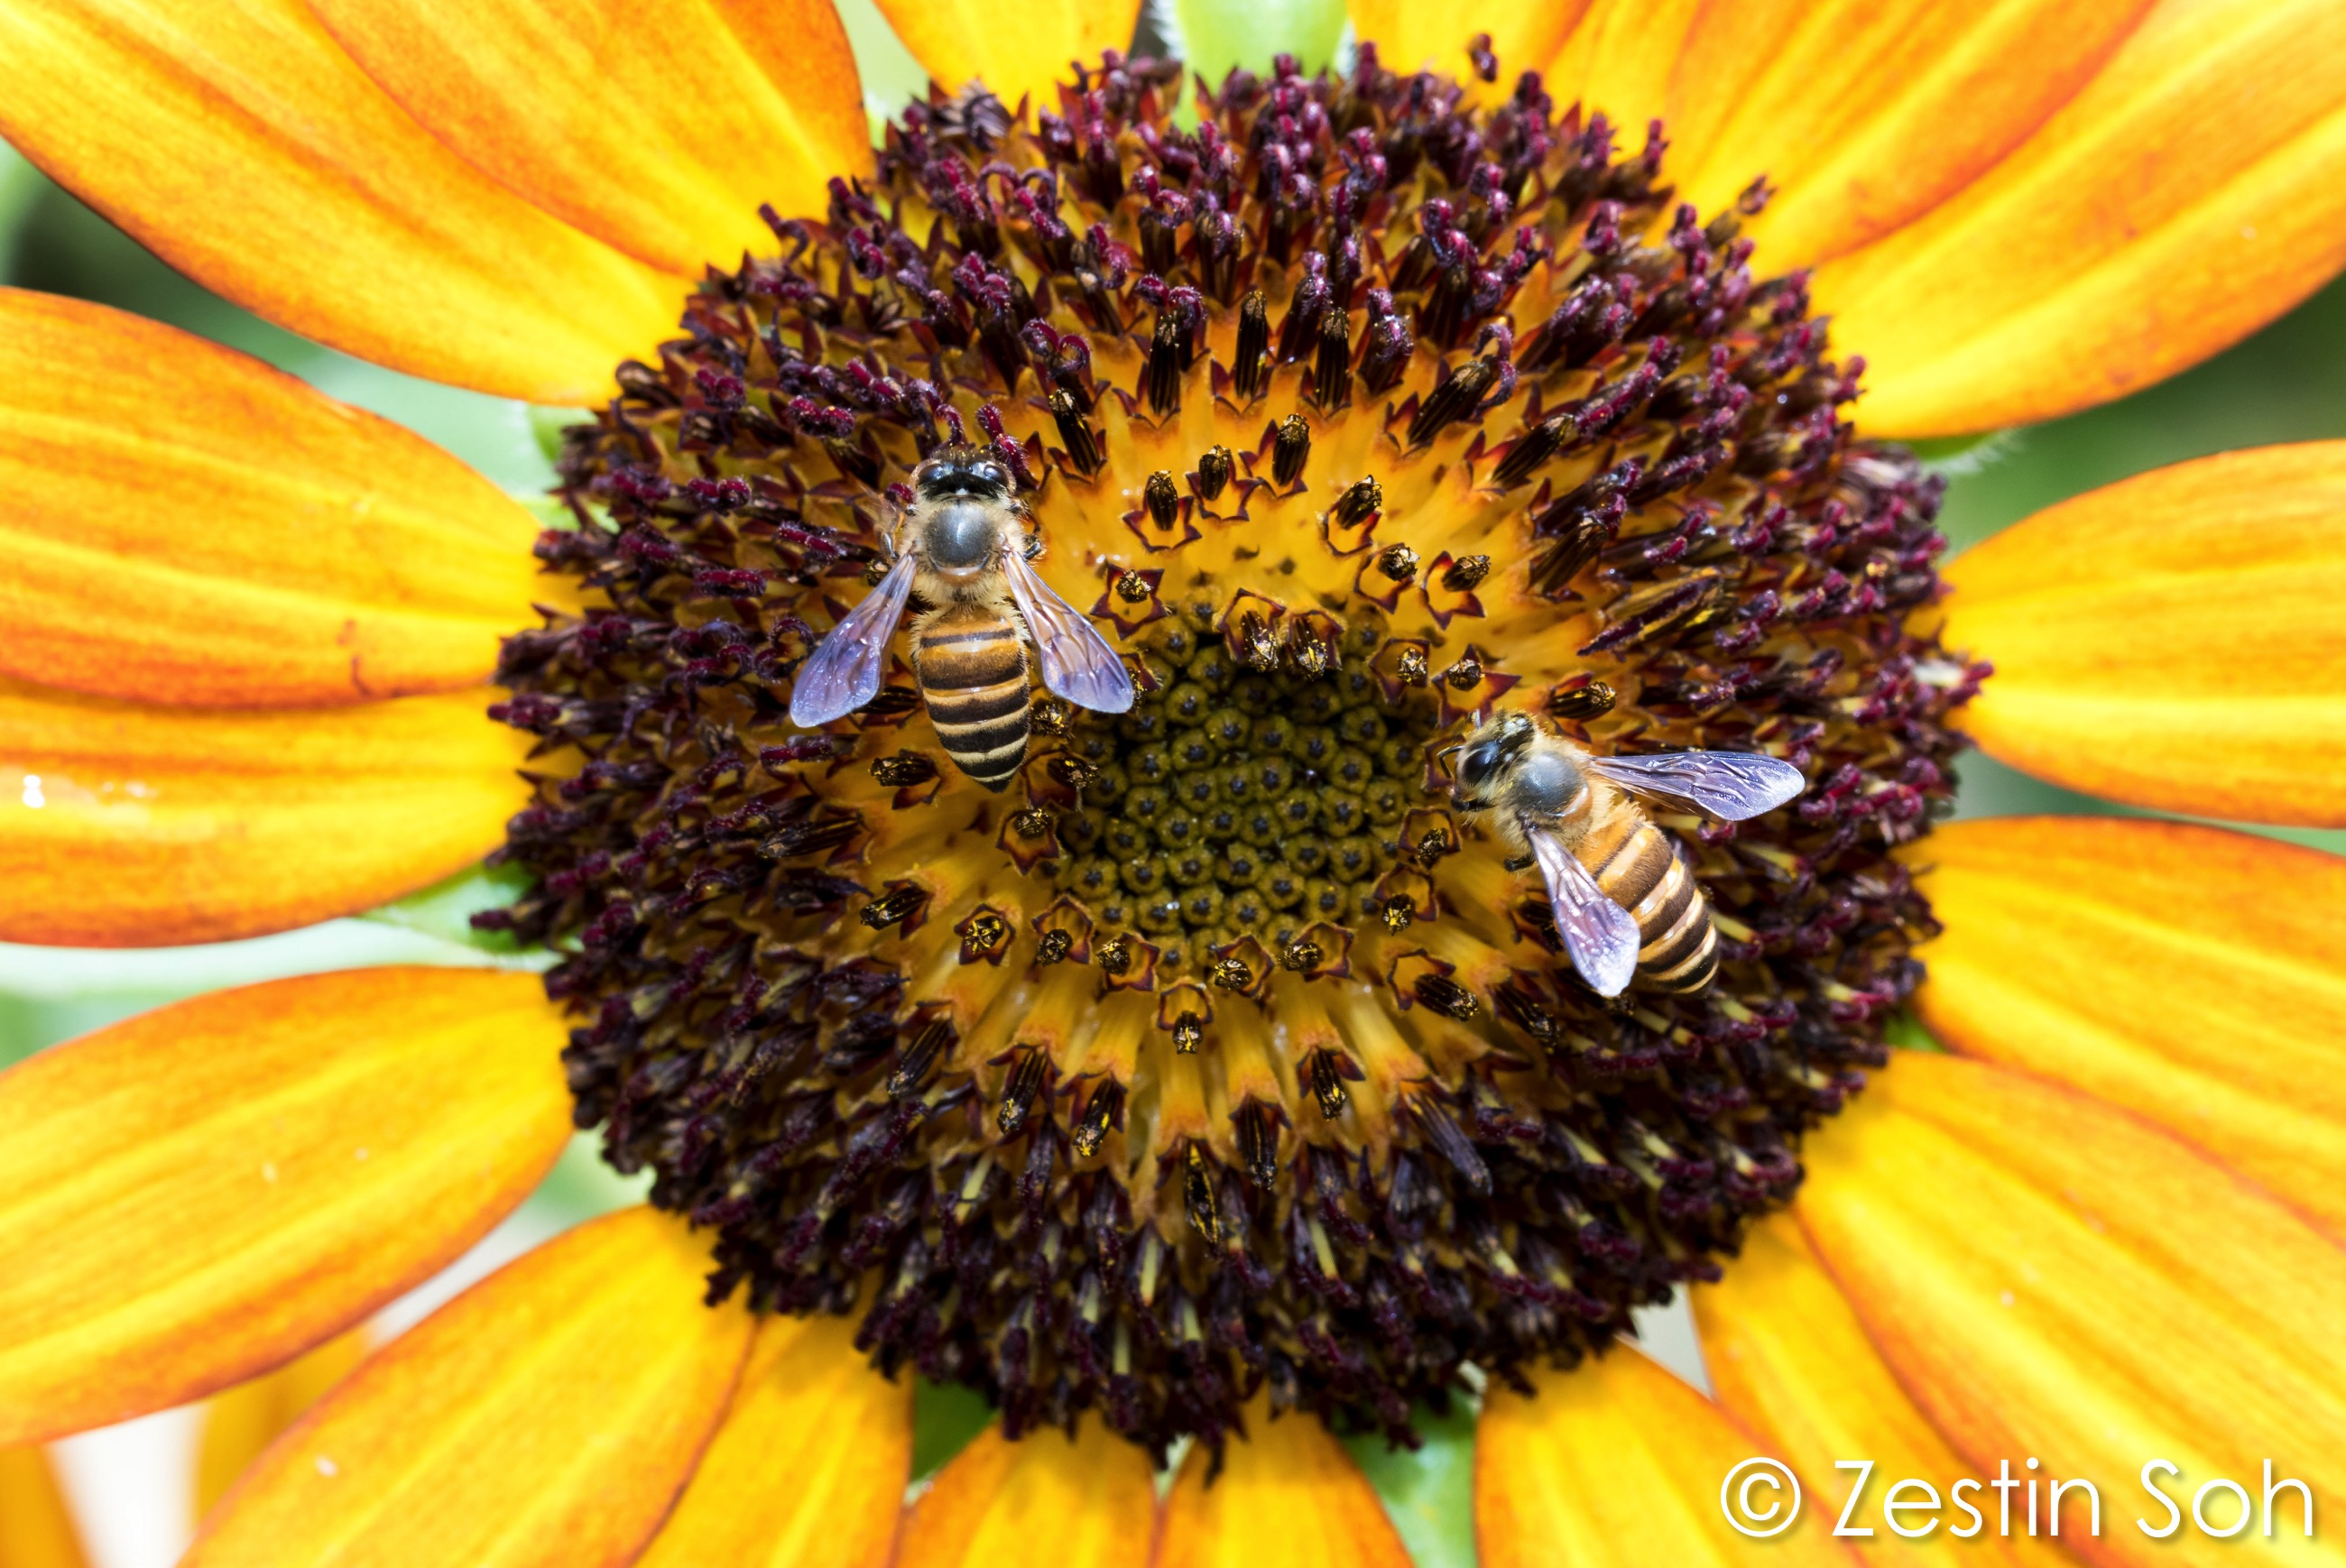 The Buzz In 'Bee-utiful' Community Gardens